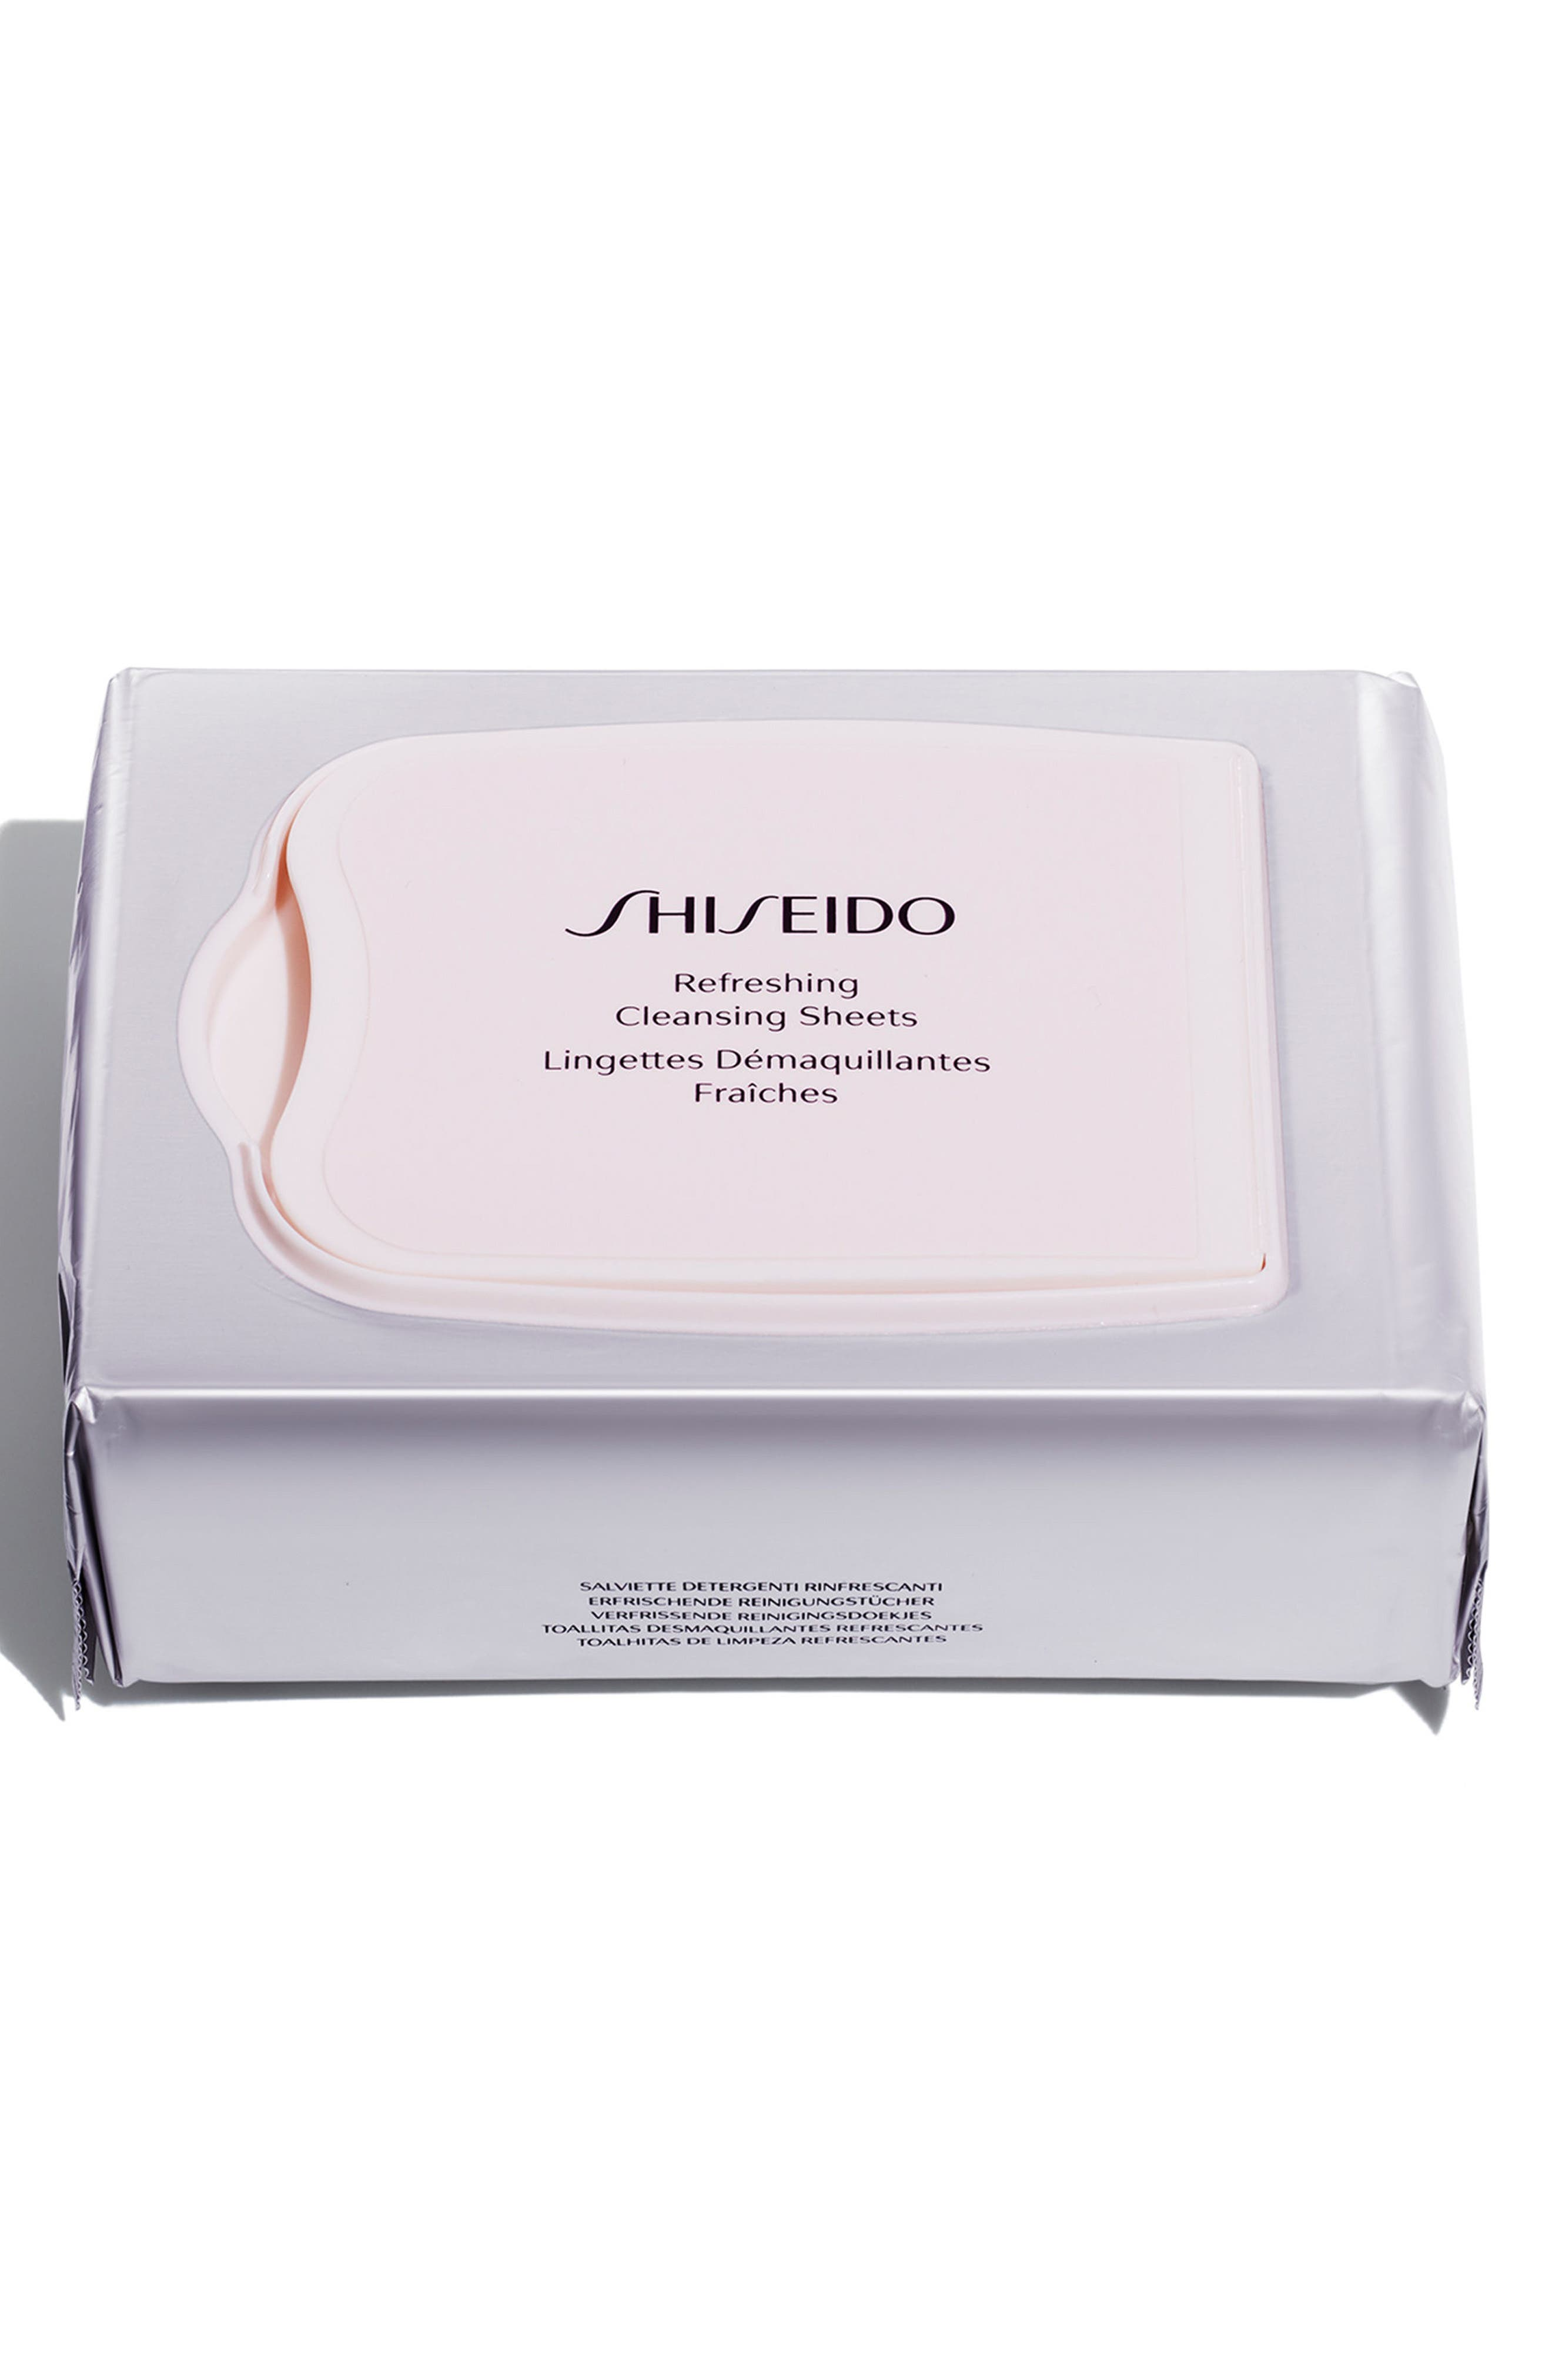 Alternate Image 1 Selected - Shiseido Refreshing Cleansing Sheets